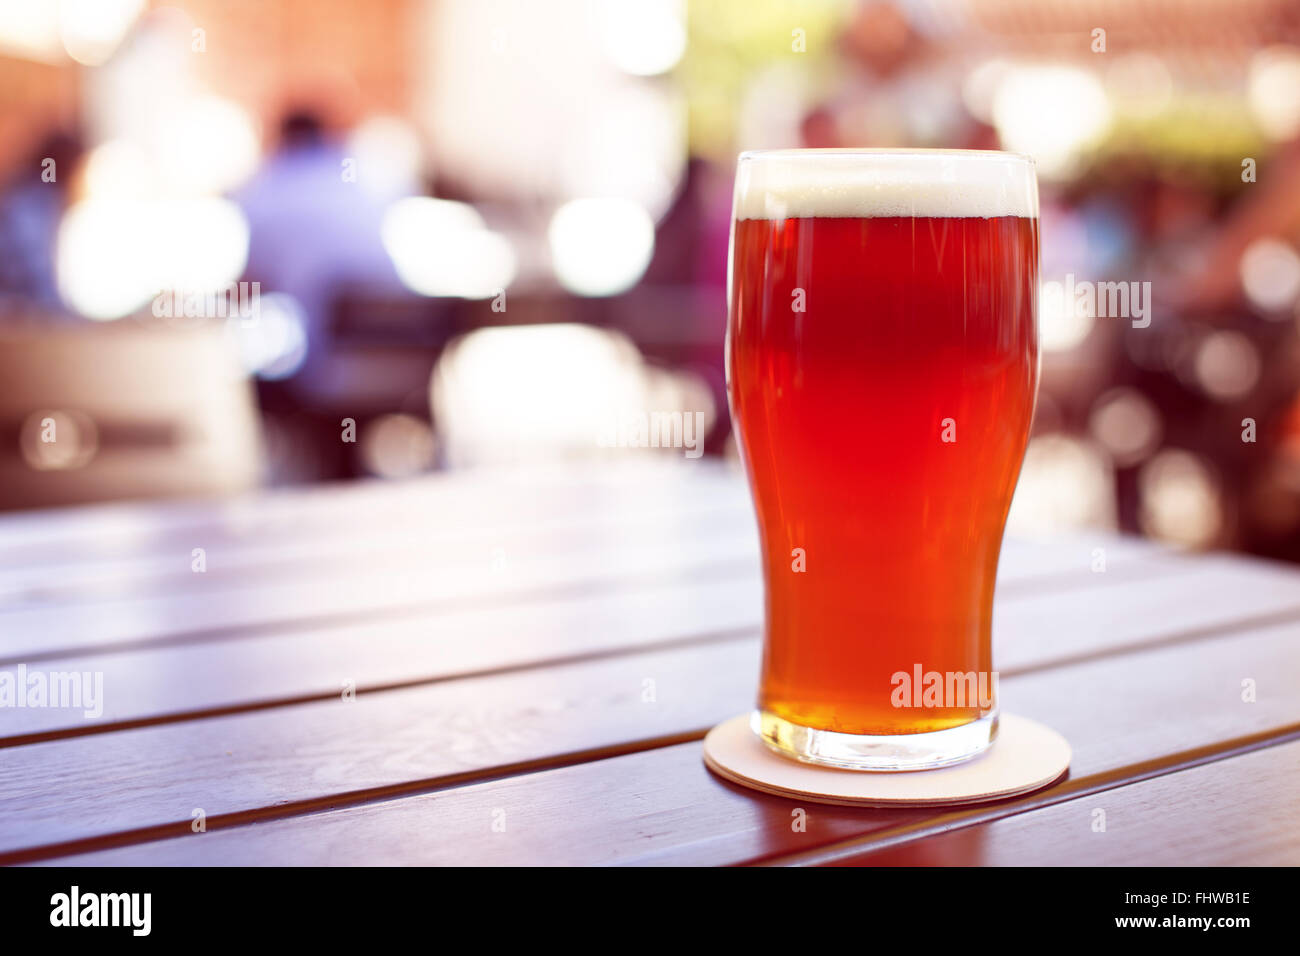 Pint of crafted ale on wooden table in beer garden - Stock Image